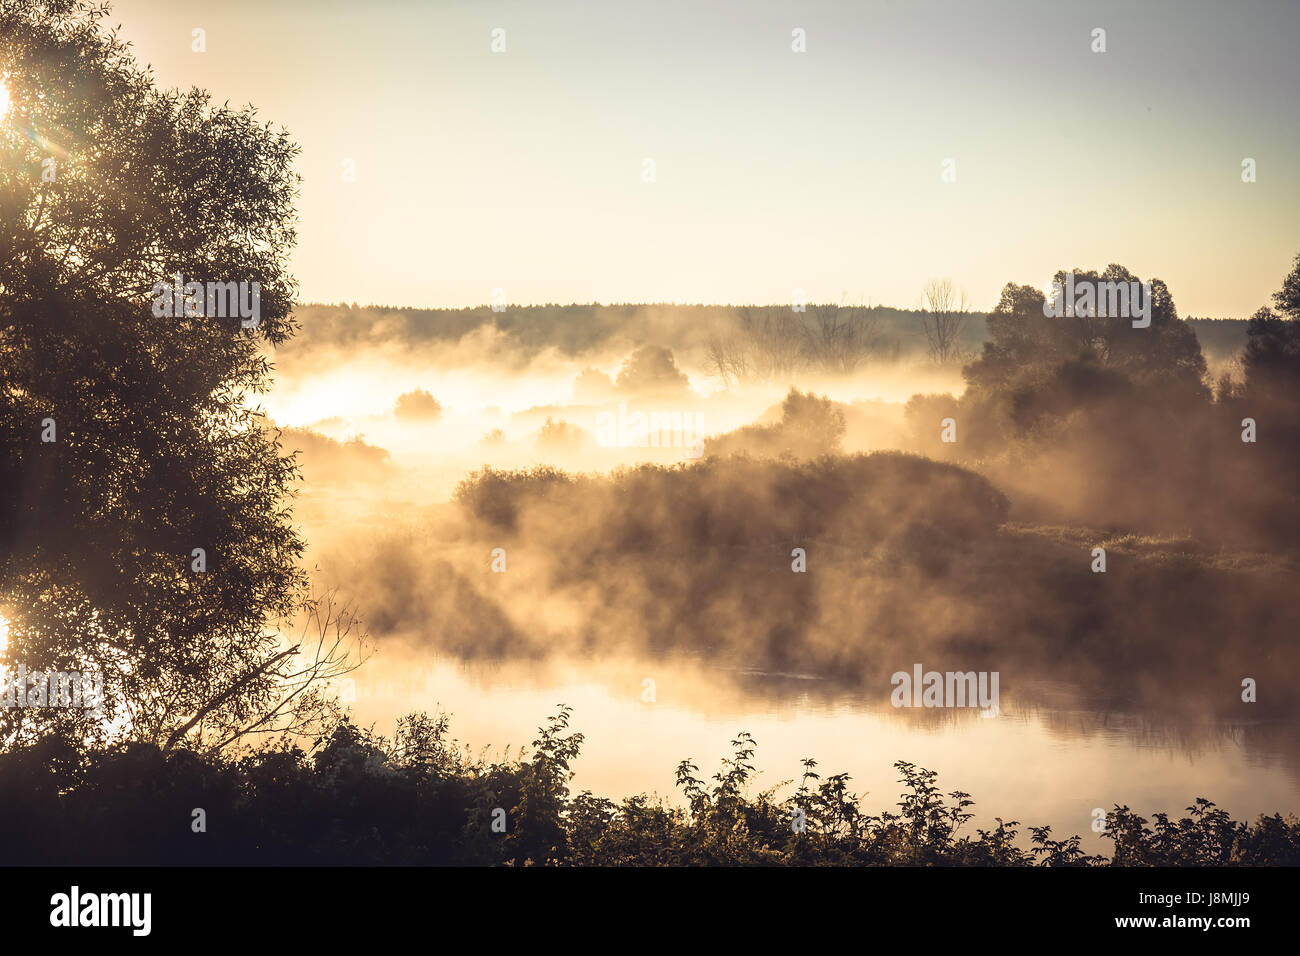 Misty rural landscape during golden hour at river bank in the early morning Stock Photo